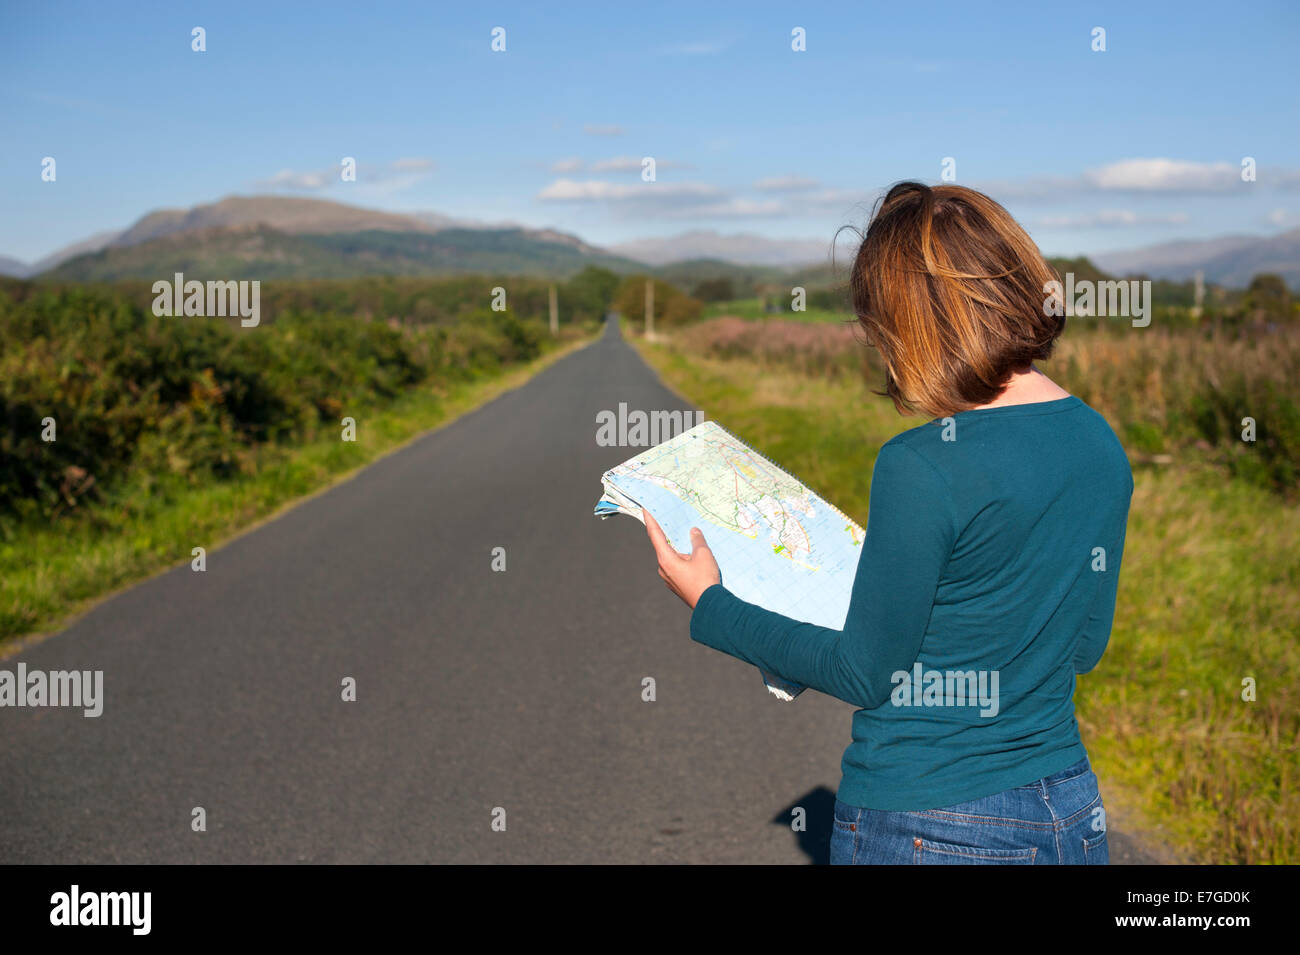 woman alone reading a map - Stock Image